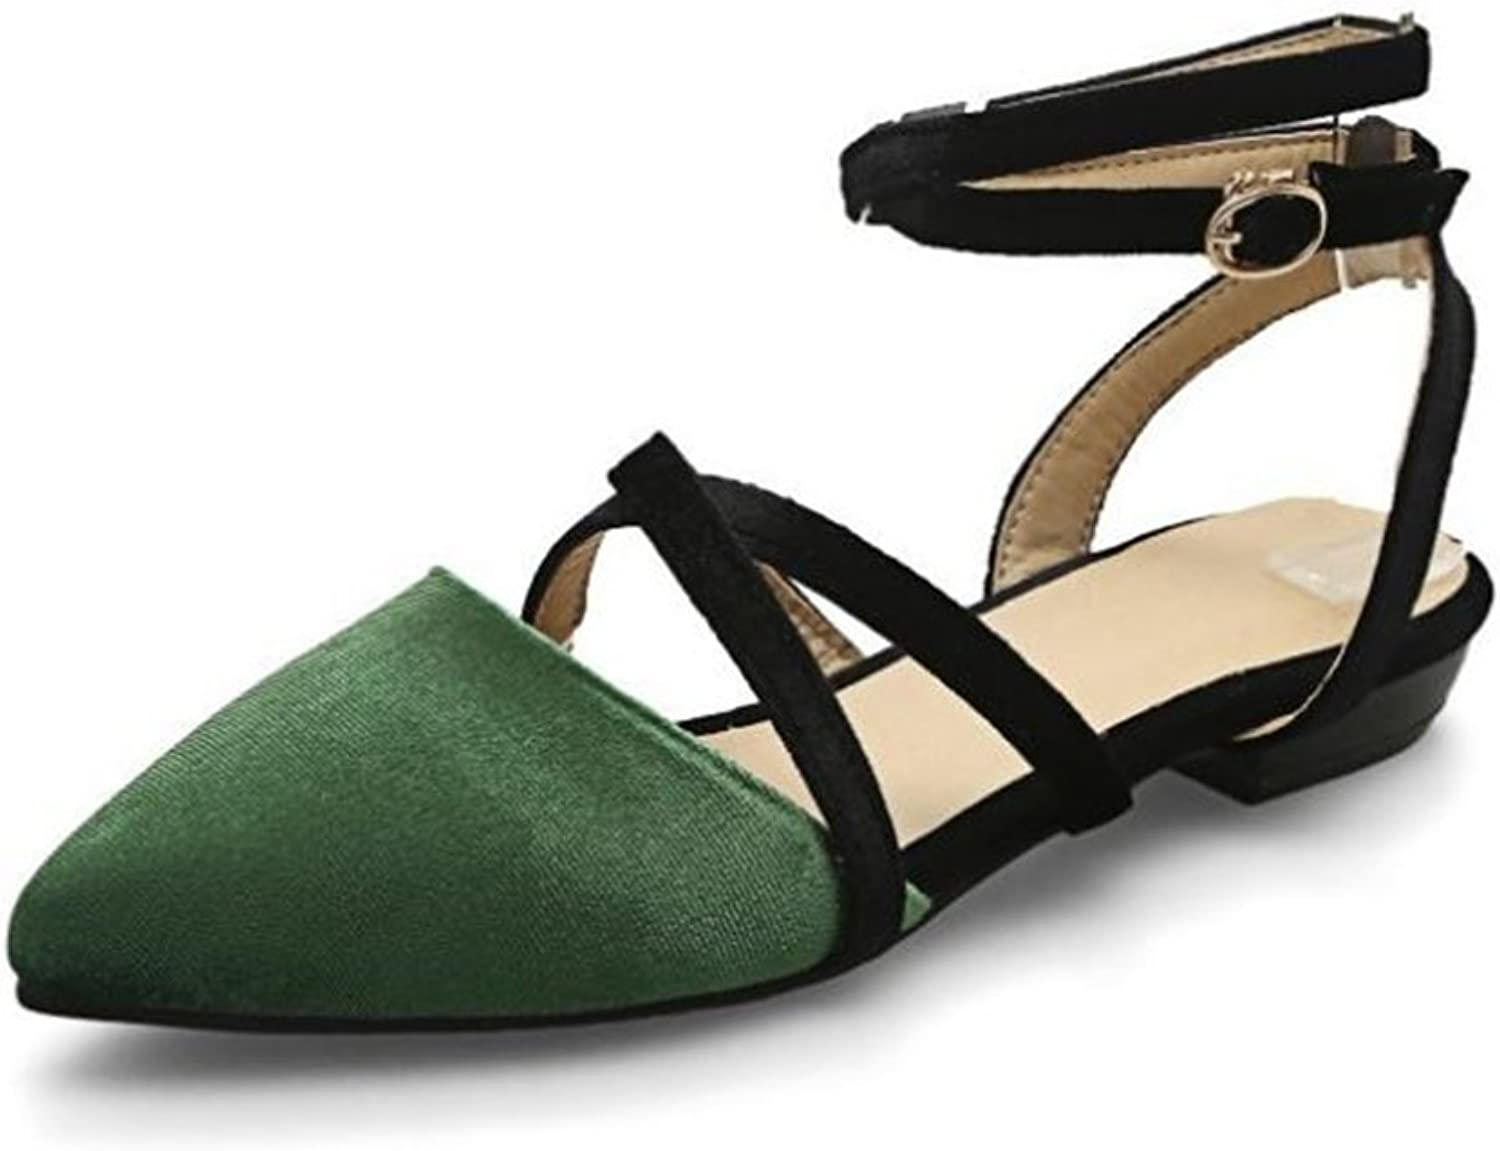 Women's Pointy Toe Boat Ballet shoes Faux Leather Slip on Low Flats